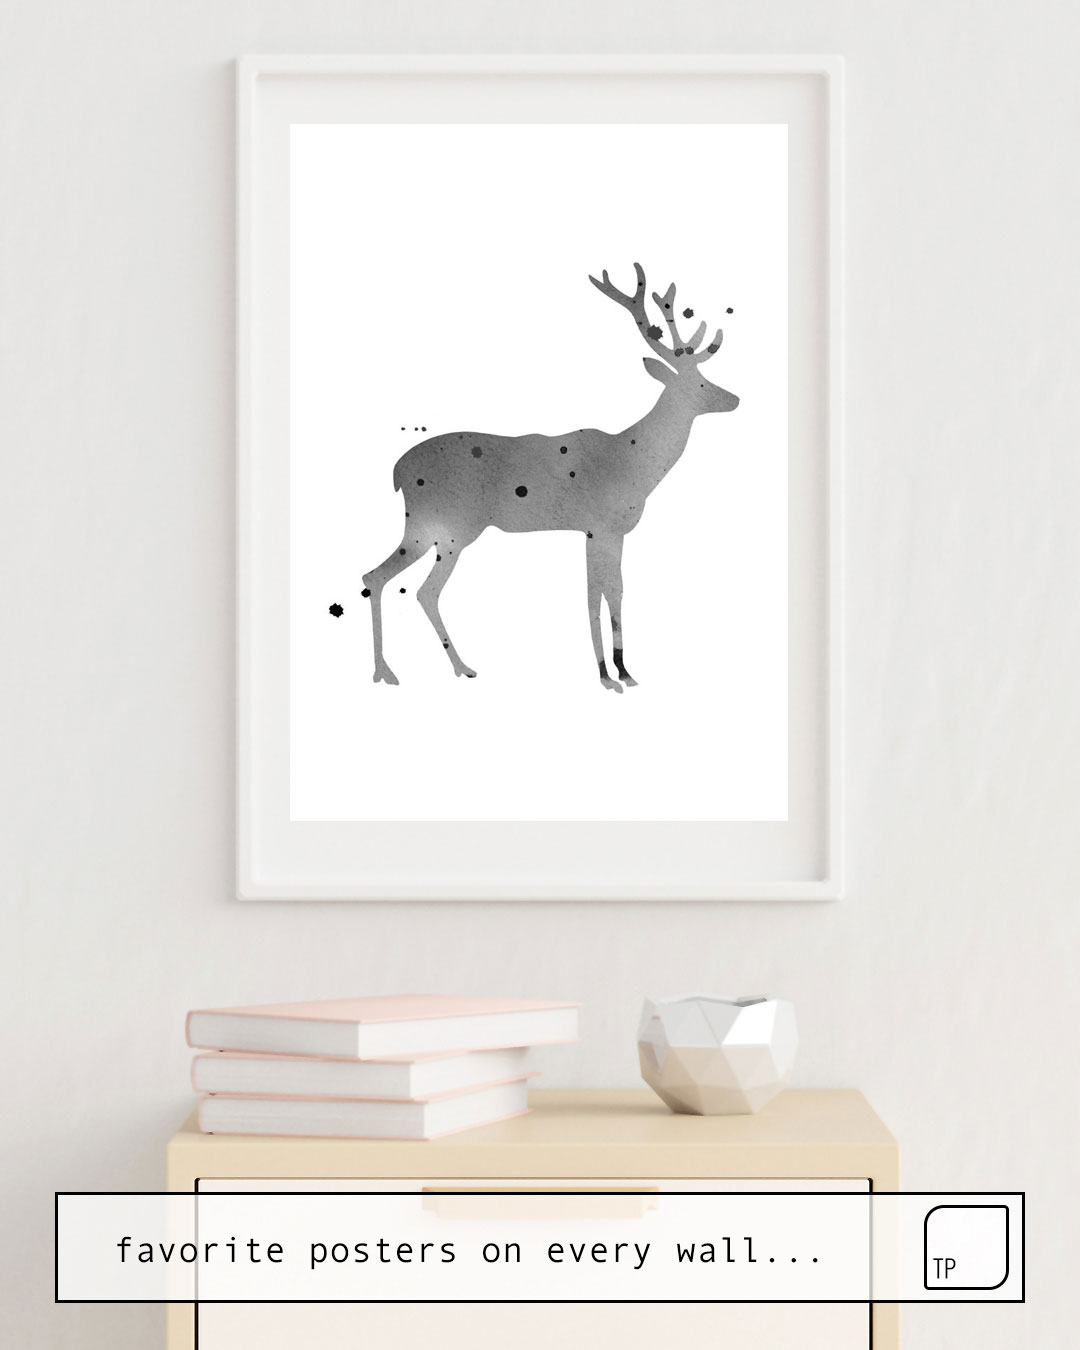 The photo shows an example of furnishing with the motif DEER. WATERCOLOR ILLUSTRATION ON WHITE. by Art by ASolo as mural